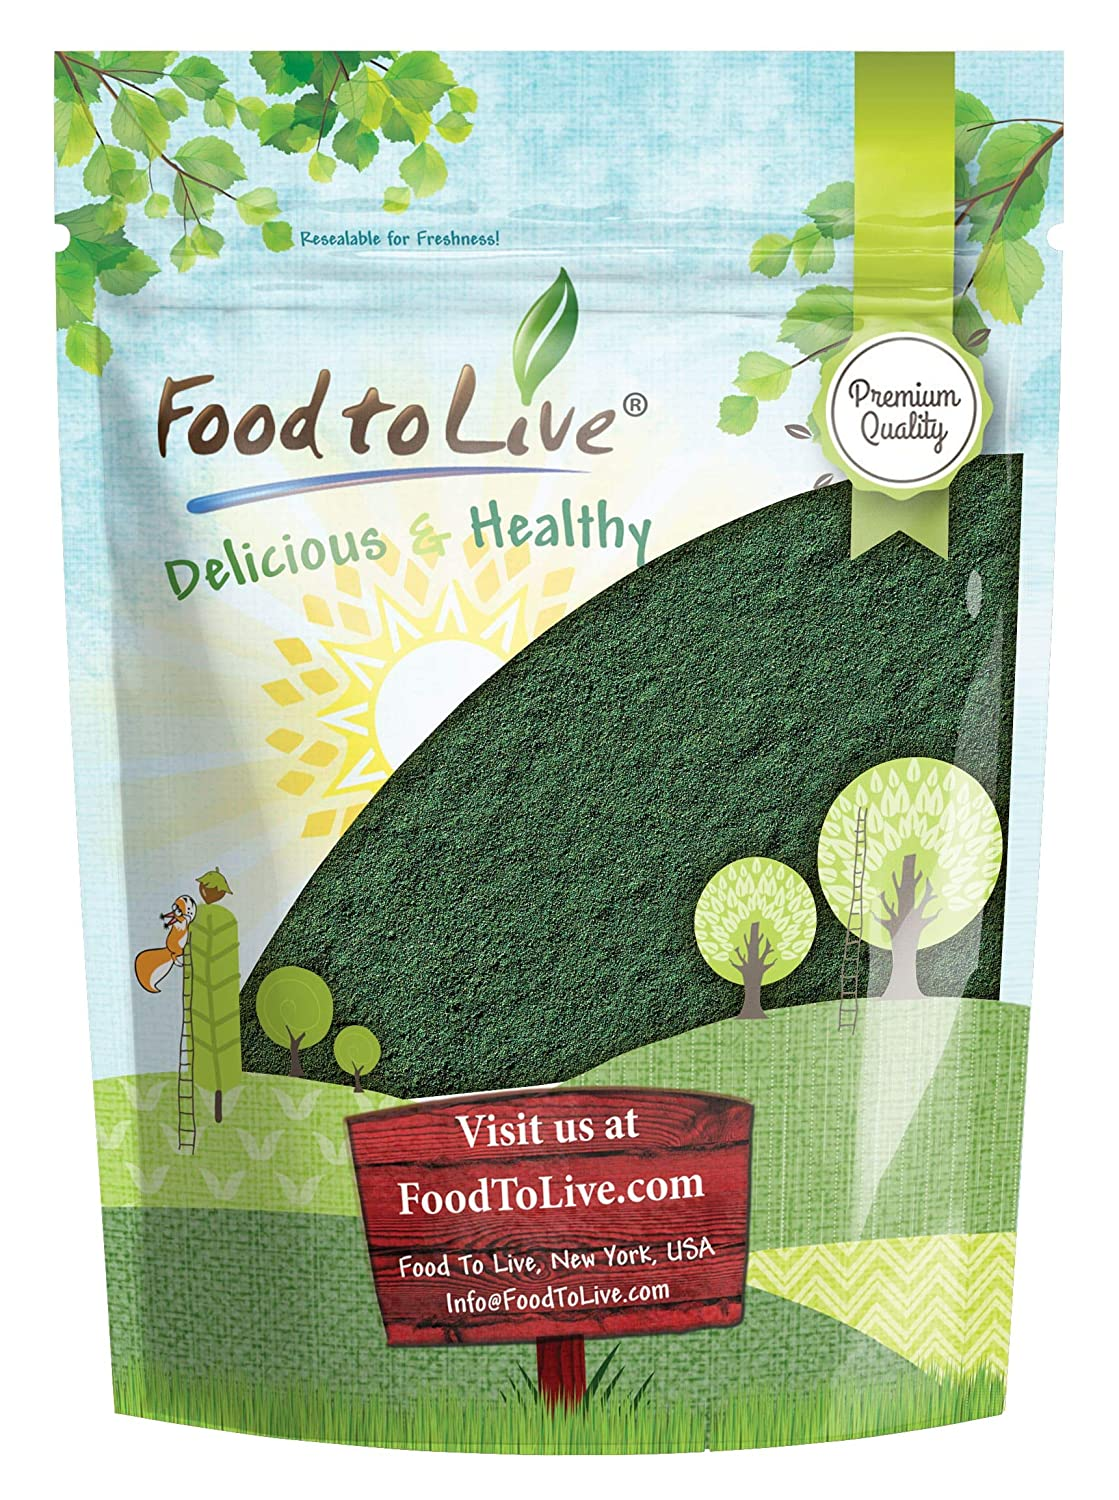 Chlorella Powder, 4 Pounds – Kosher, Raw Green Algae, Vegan Superfood, Bulk, Pure Vegan Green Protein, Rich in Vitamins and Minerals, Great for Drinks, Teas and Smoothies